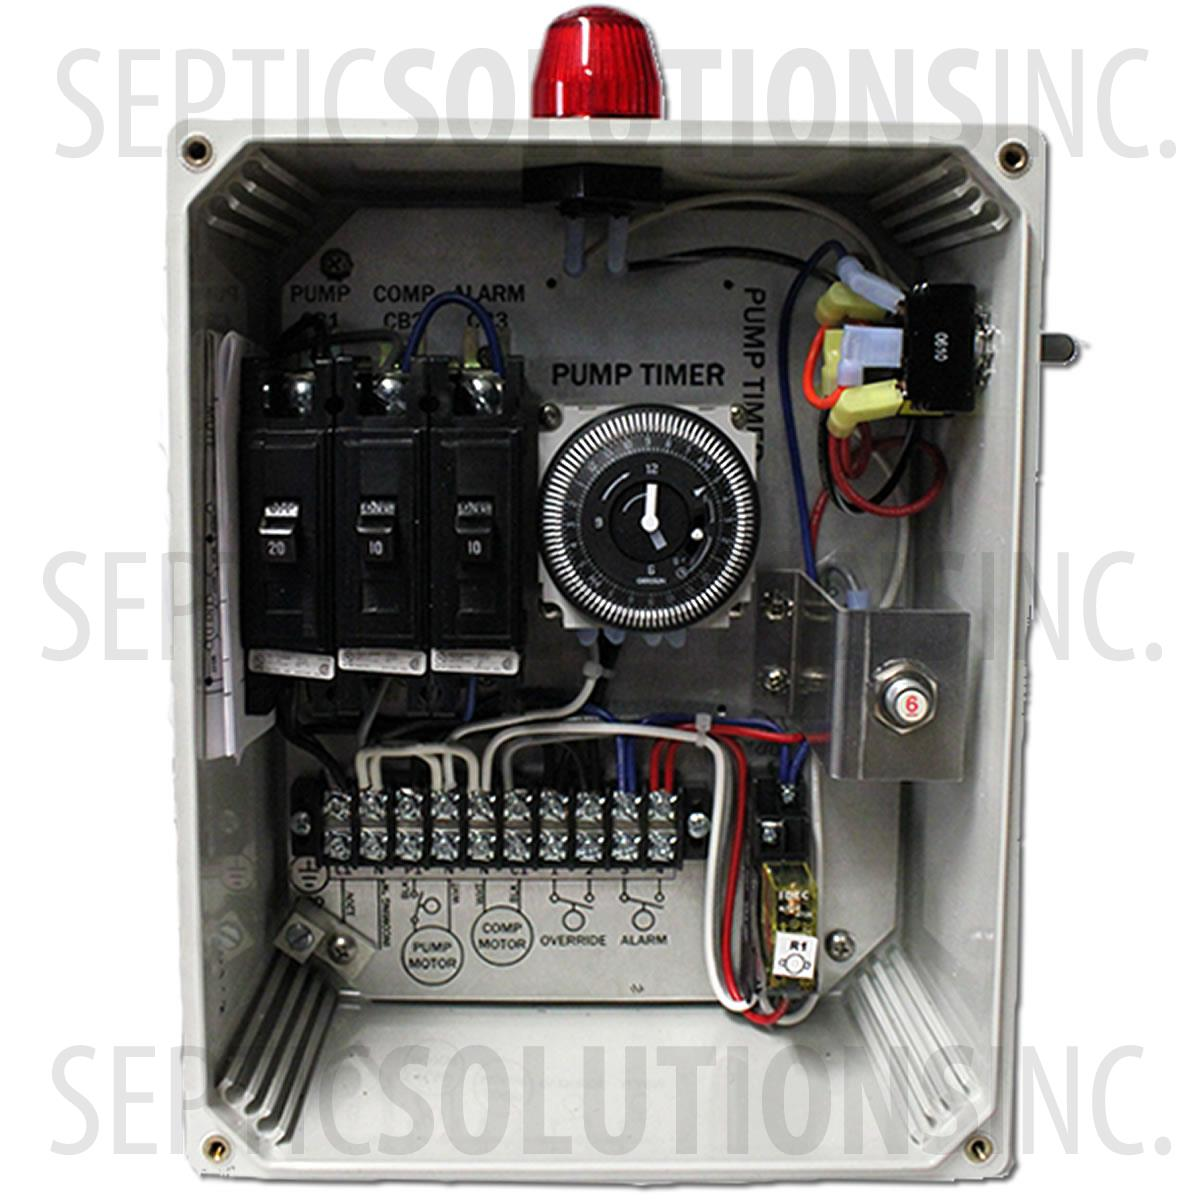 rwt 1l control panel for jet and norweco systems 50b009 rwt 1l rh septicsolutions com Electrical Control Panel Wiring Diagram Electrical Control Panel Wiring Diagram